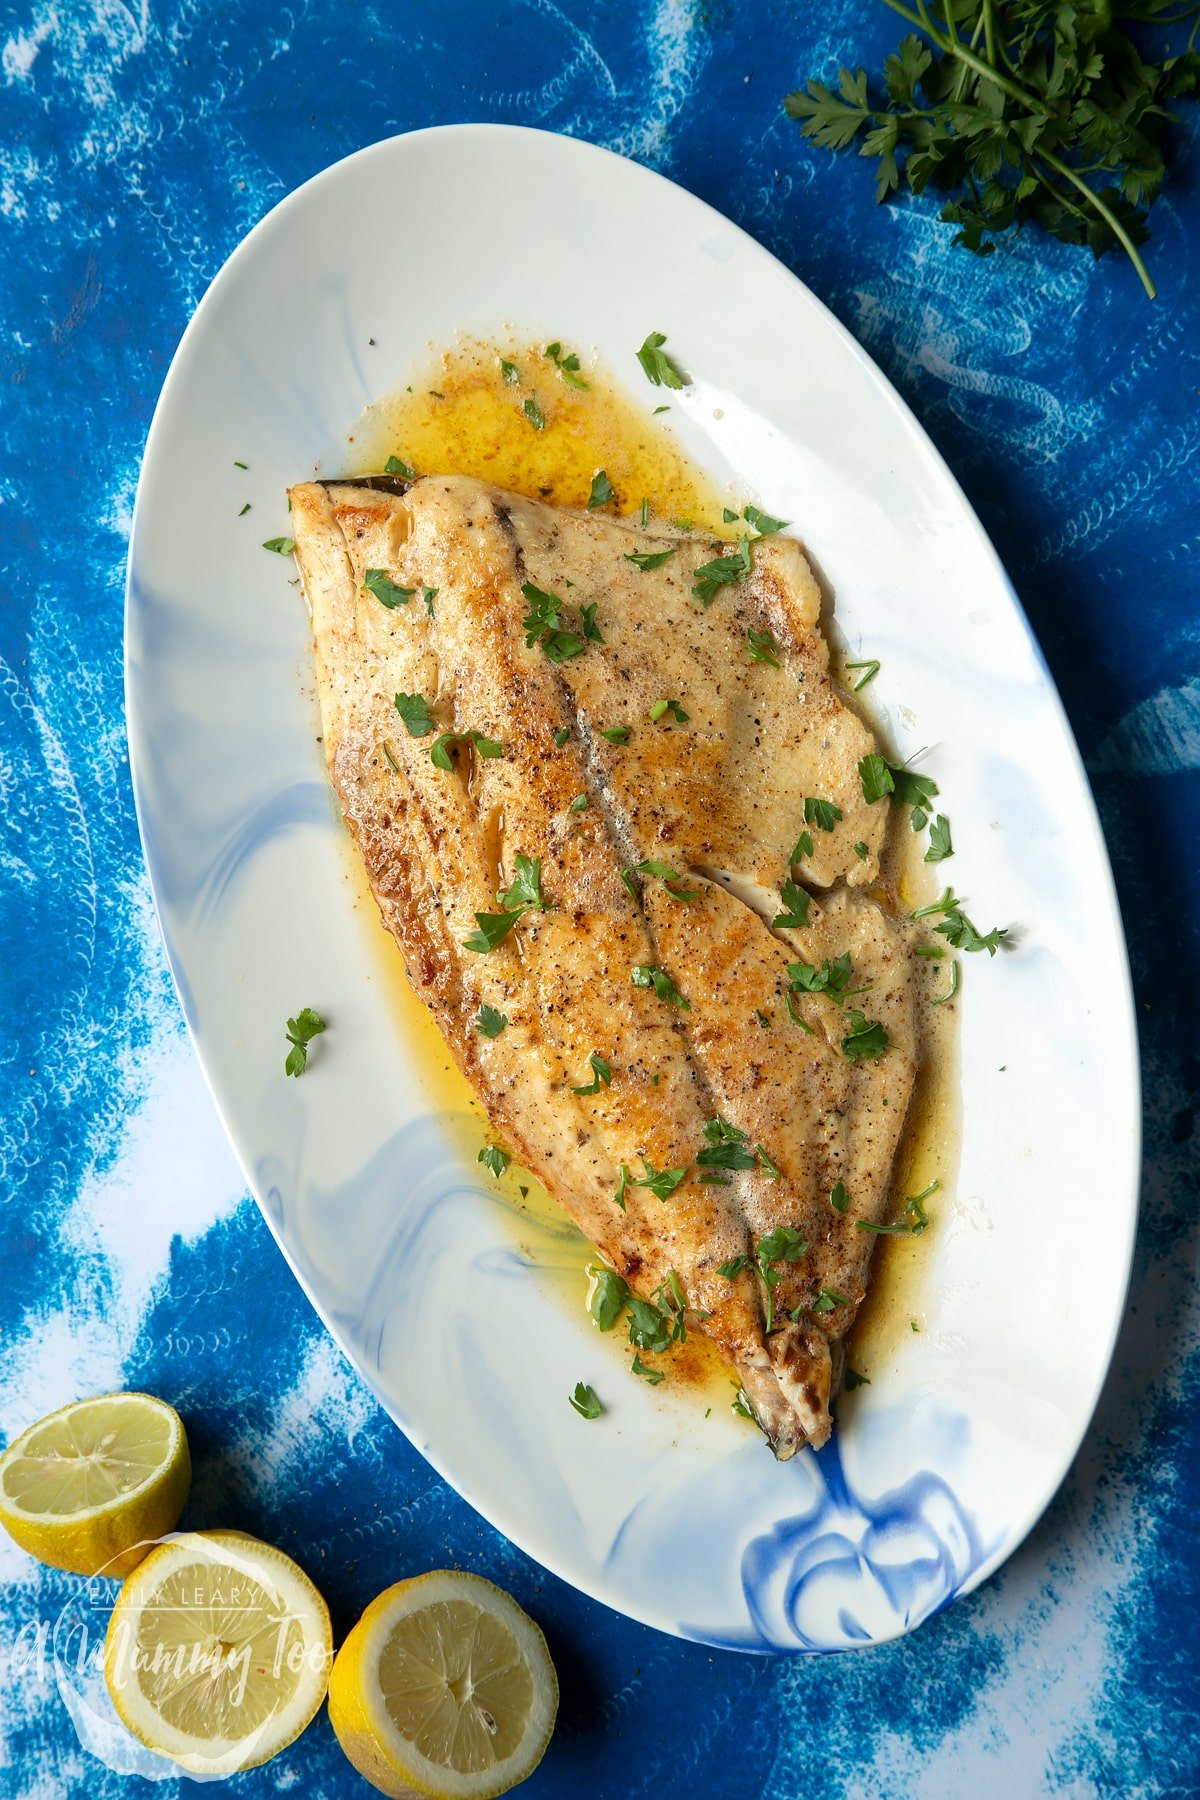 Pan-fried Yellowtail on an oval serving dish. The fish fillet is scattered with parsley.